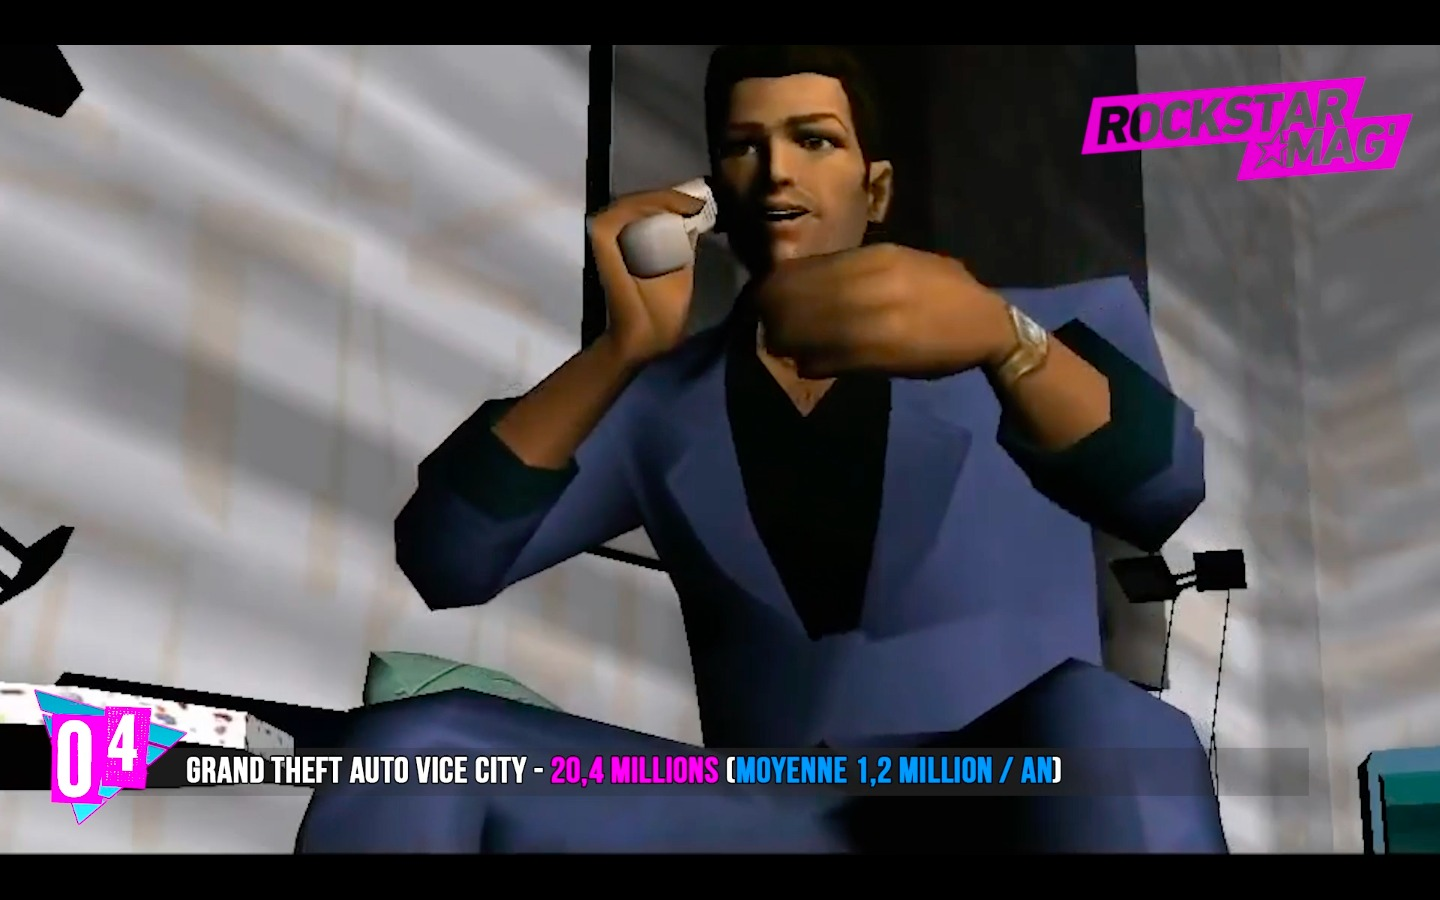 Top 4 Rockstar Games - GTA Vice City avec 20 Millions